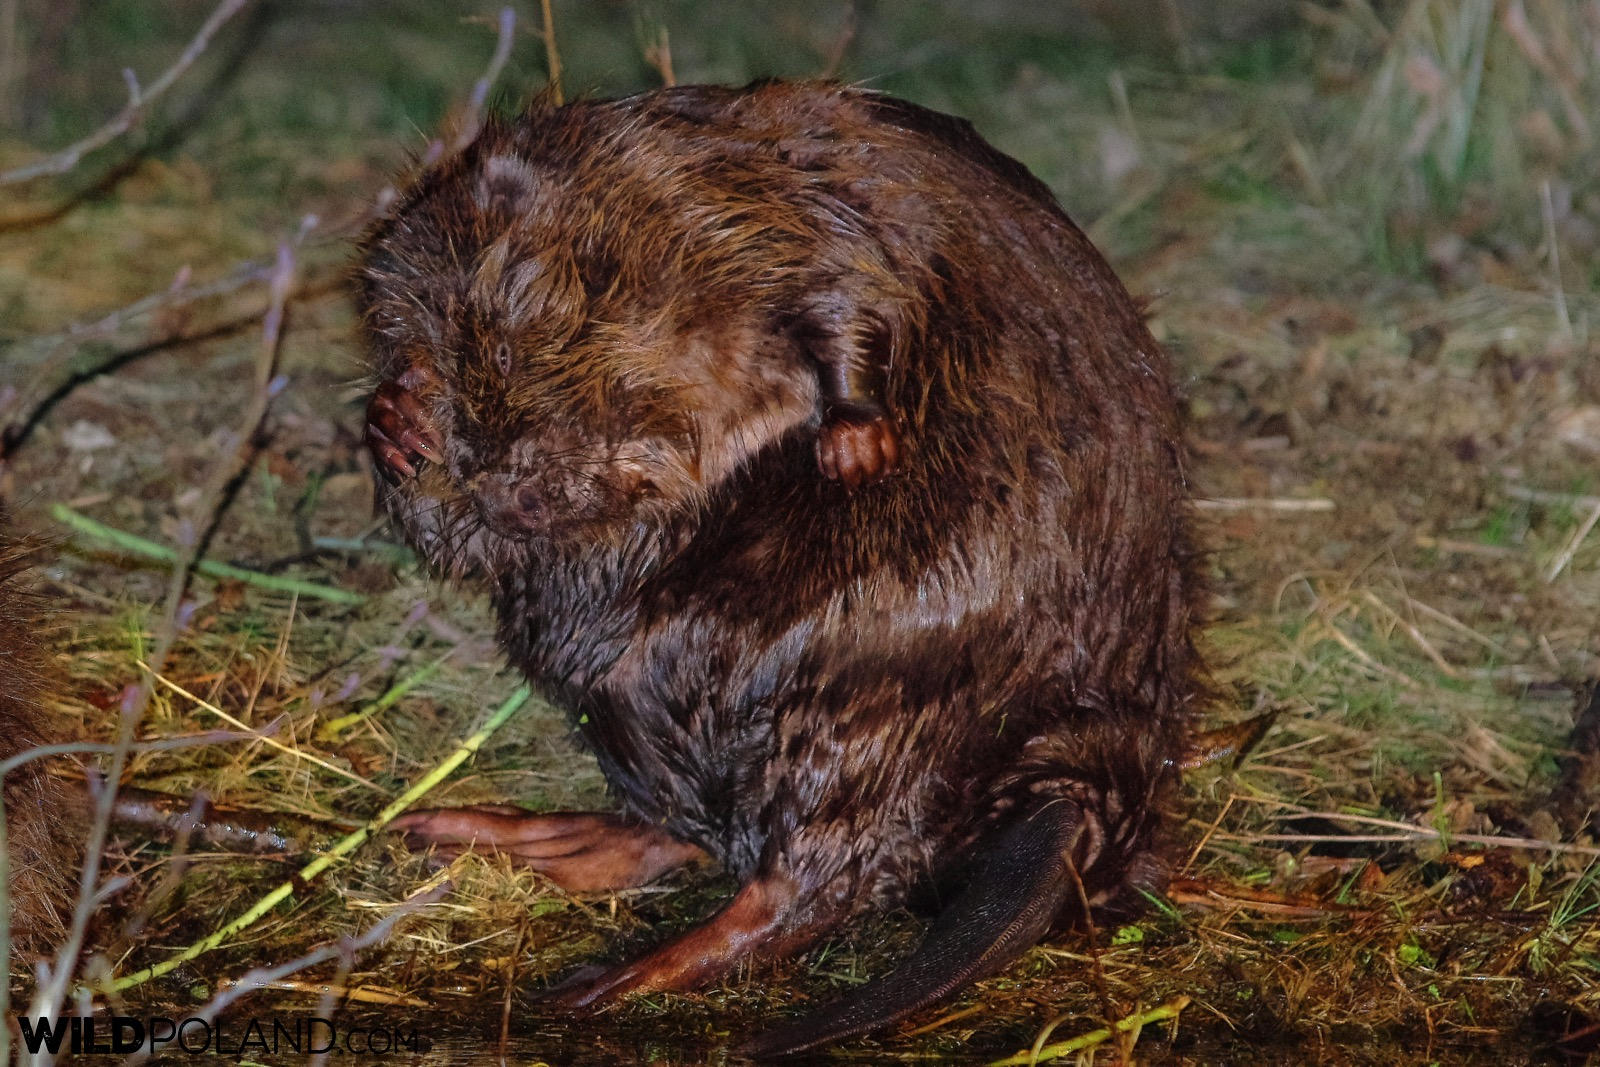 Beaver grooming at the bank of the river, Biebrza Marshes, photo by Andrzej Petryna